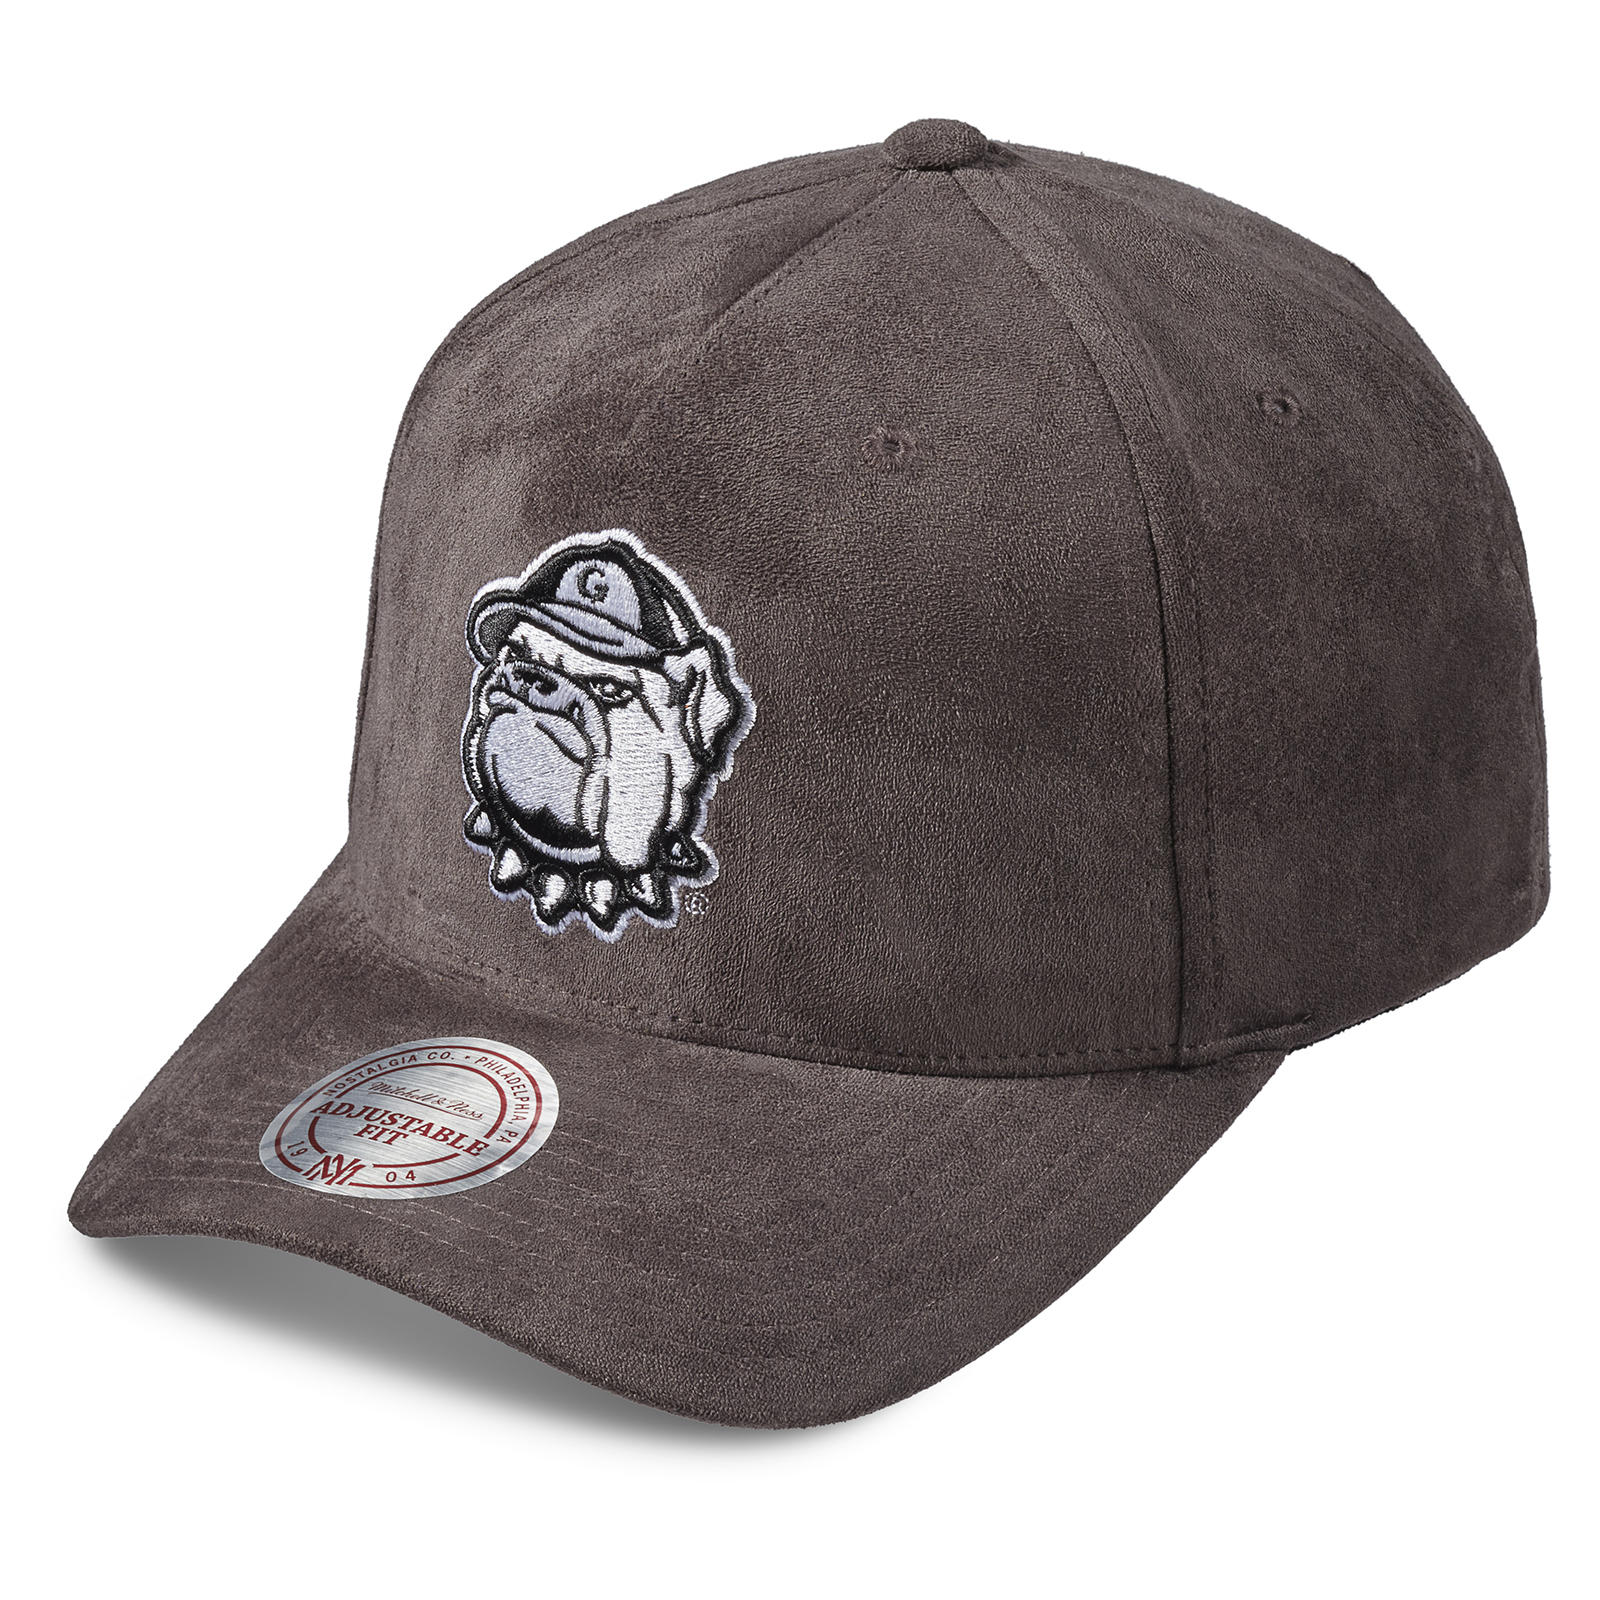 quality design 6aecd 50b74 new arrivals mitchell ness nostalgia co. classic snapback georgetown hoyas  00380 f80f4